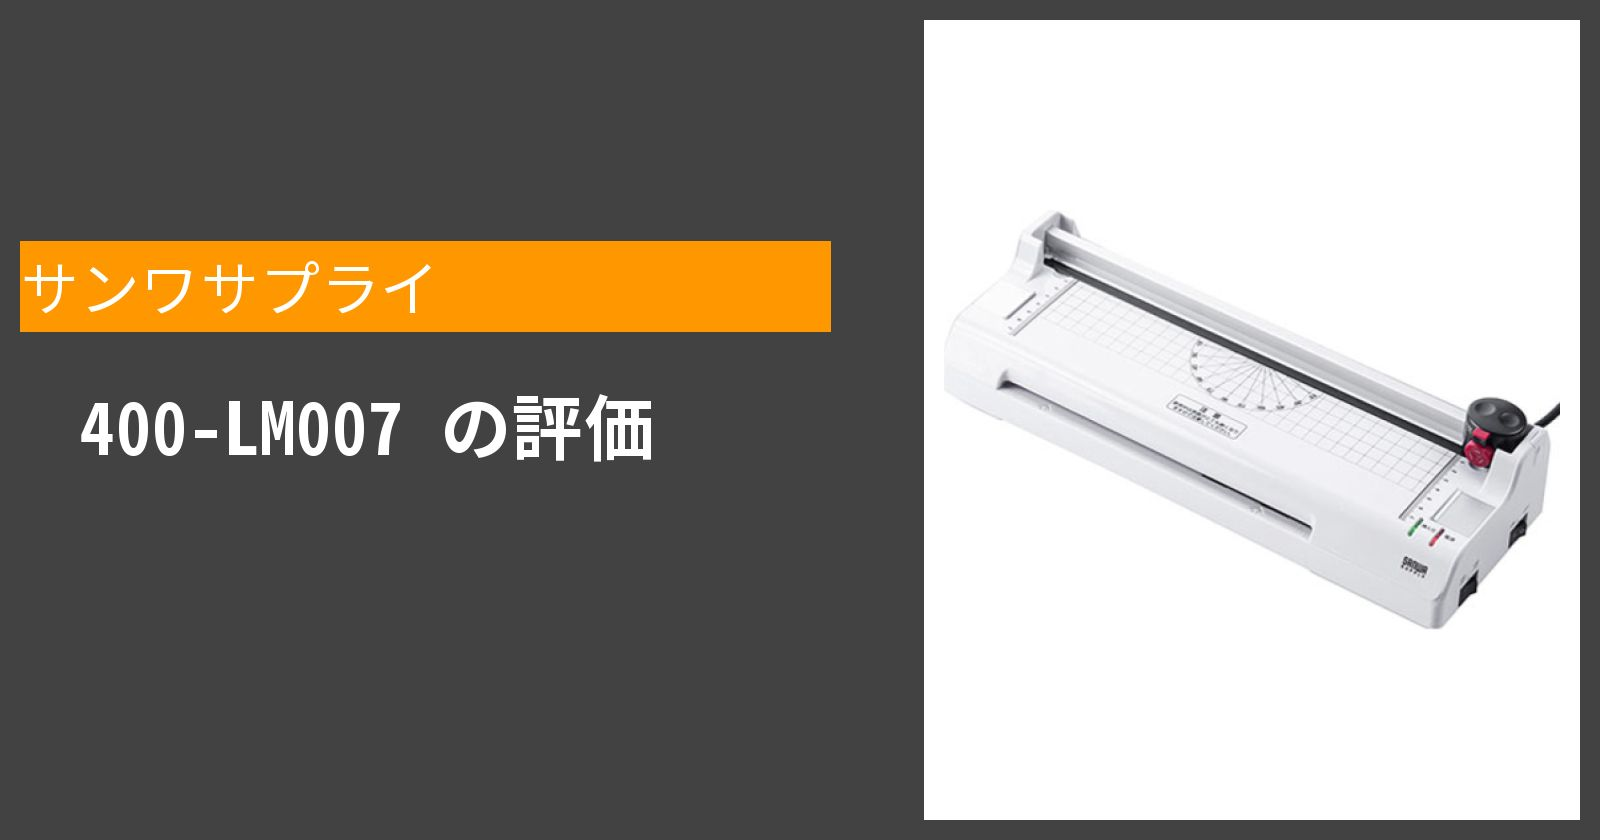 400-LM007を徹底評価